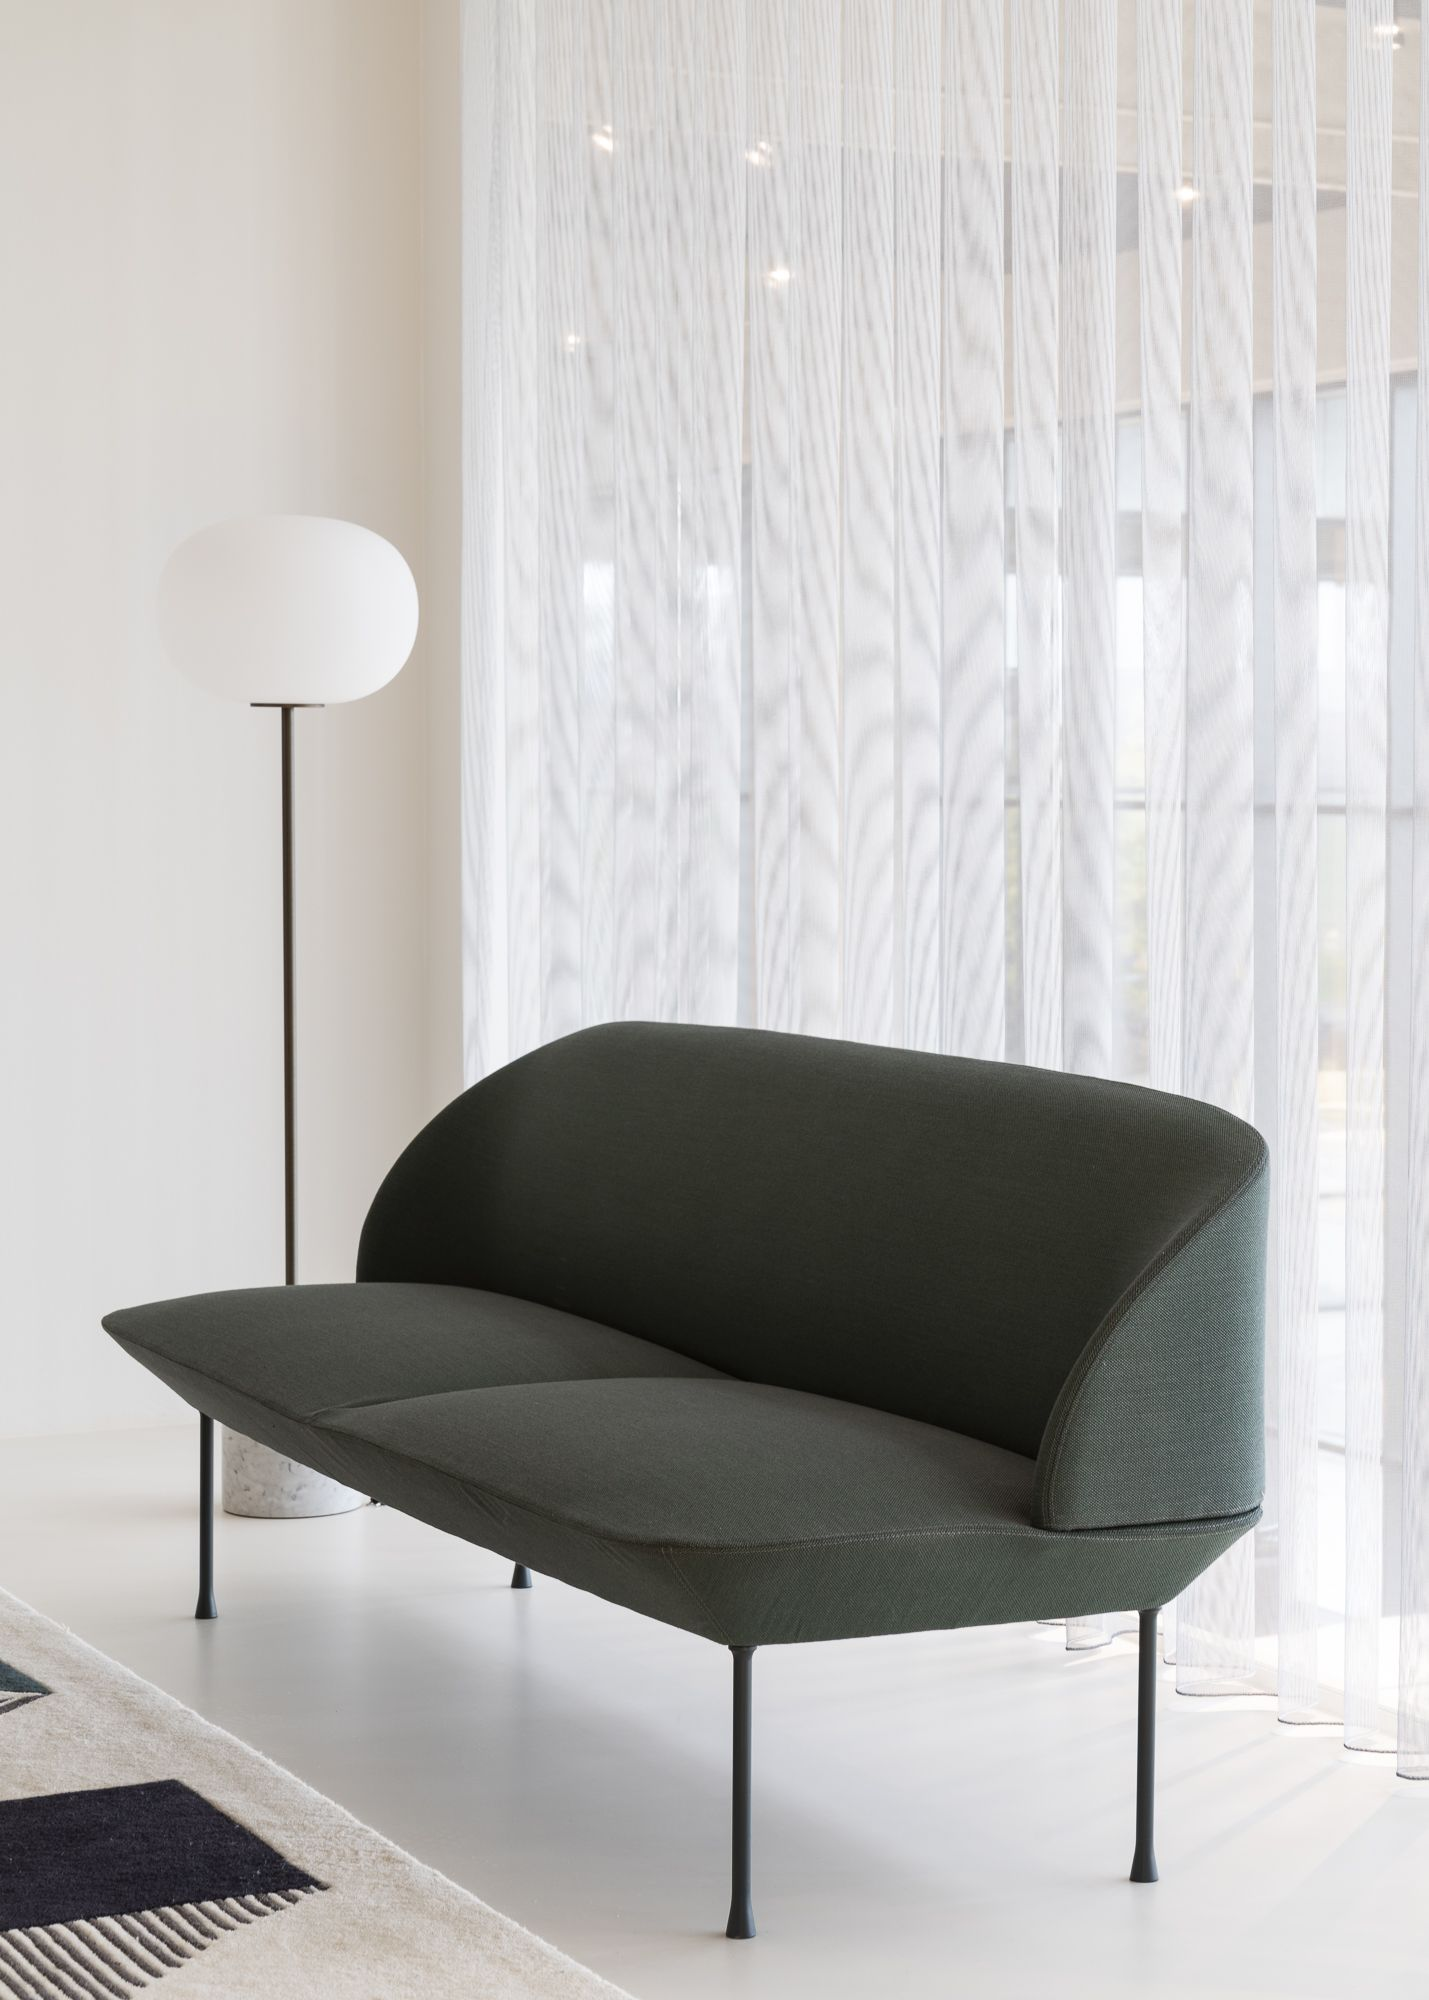 Modern Office Space Inspiration At Ambiente Denmark With Designs From Muuto The Oslo Sofa Family Unites Geometric Lines With A Light Form For The Refined Com In 2020